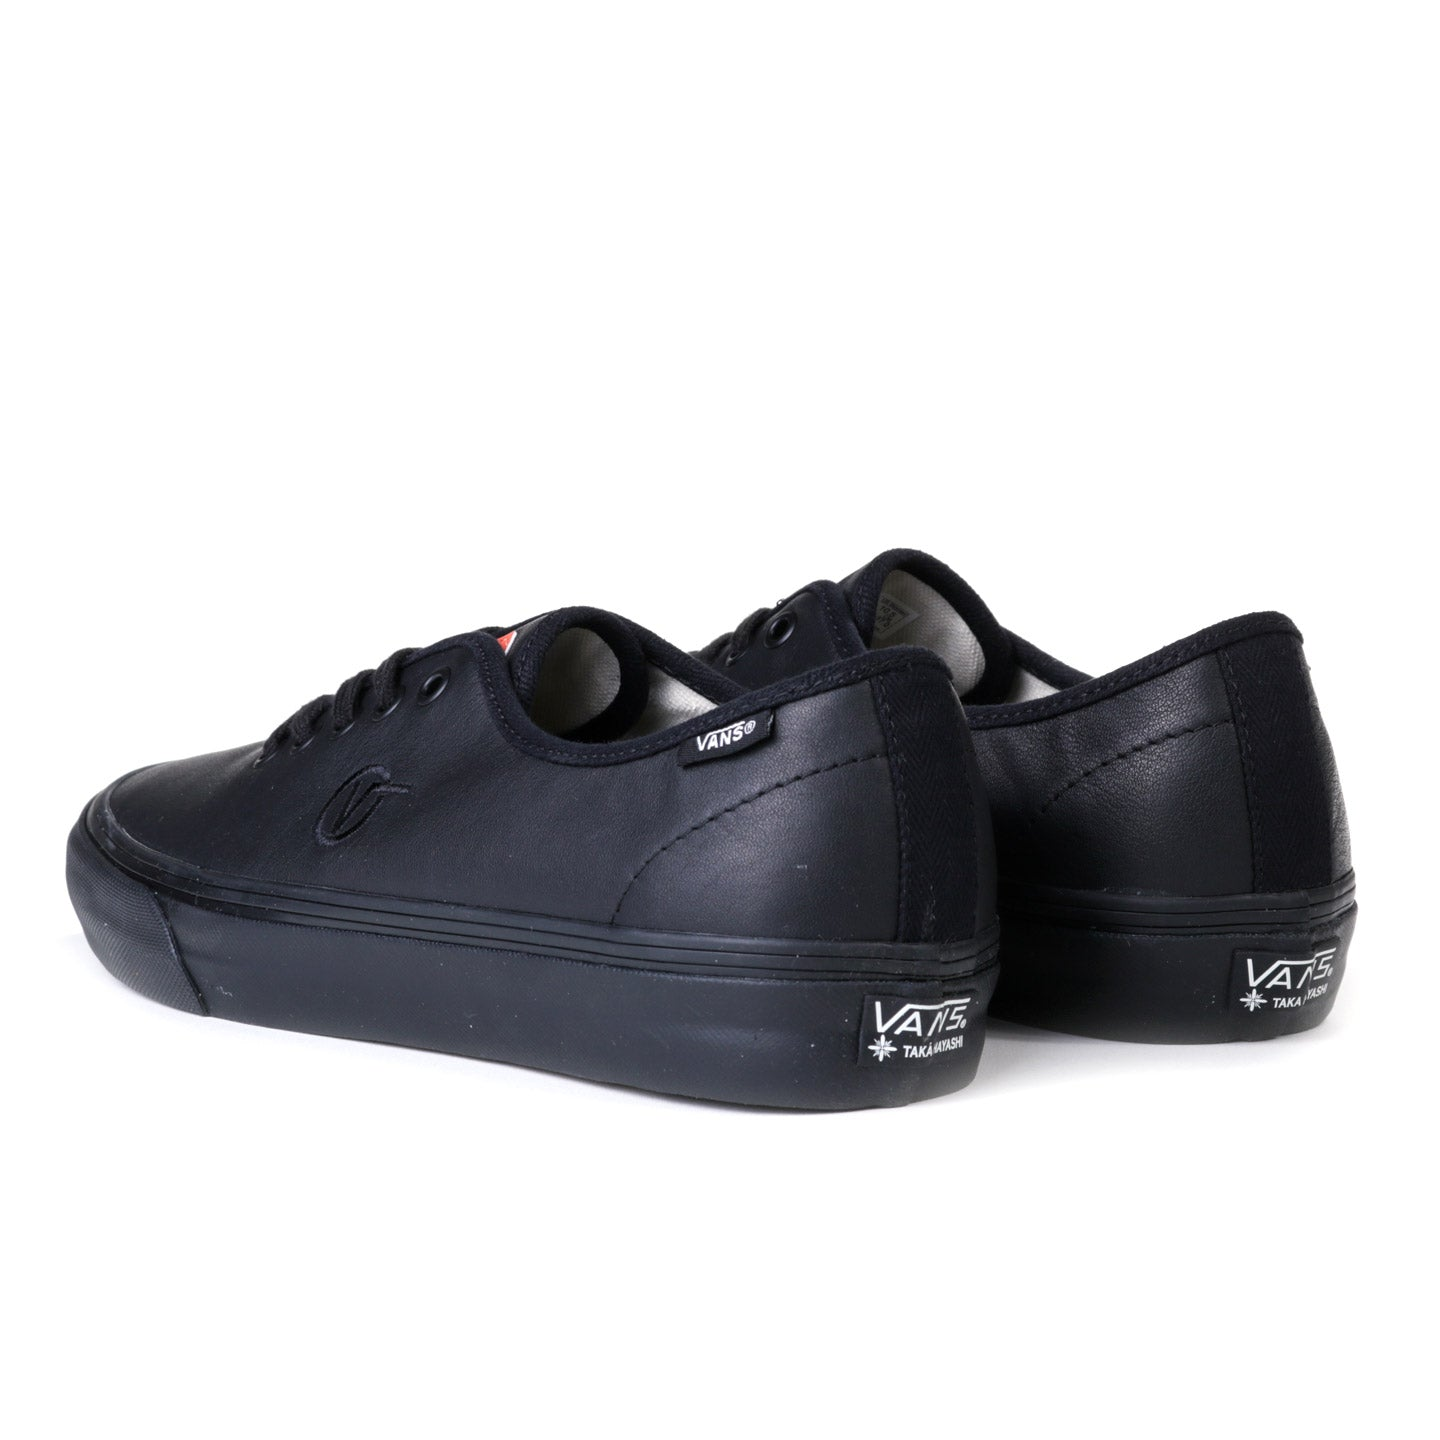 VAULT BY VANS TH AUTHENTIC ONE PIECE LX BLACK / BLACK